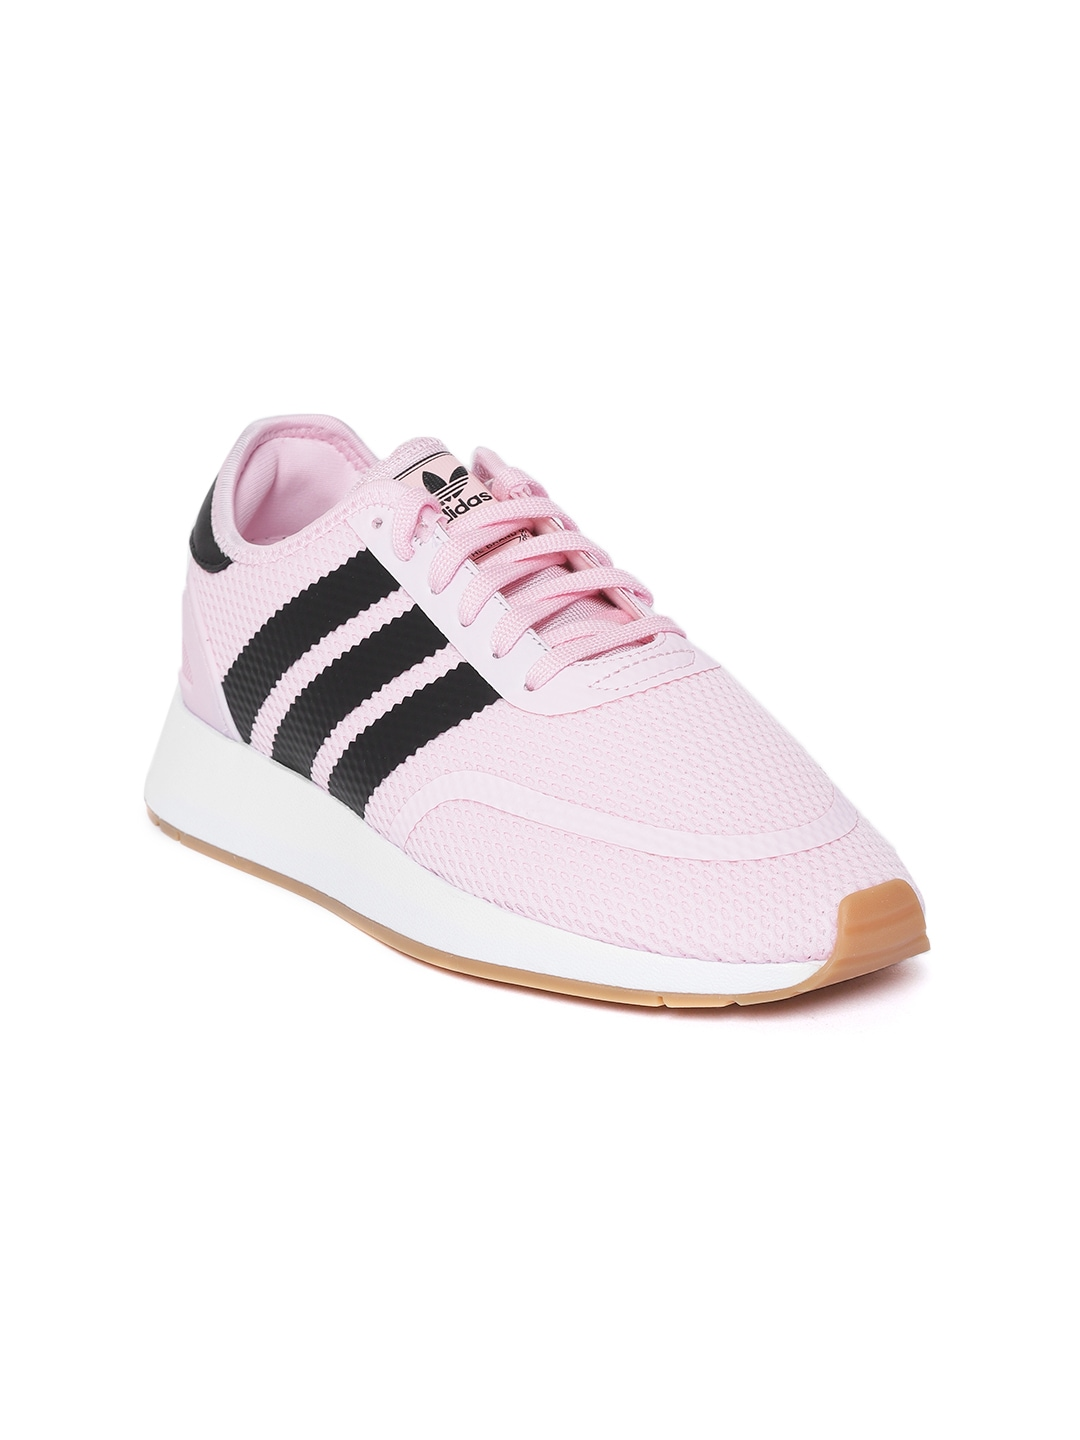 1f166f1a9d30 Women s Adidas Shoes - Buy Adidas Shoes for Women Online in India